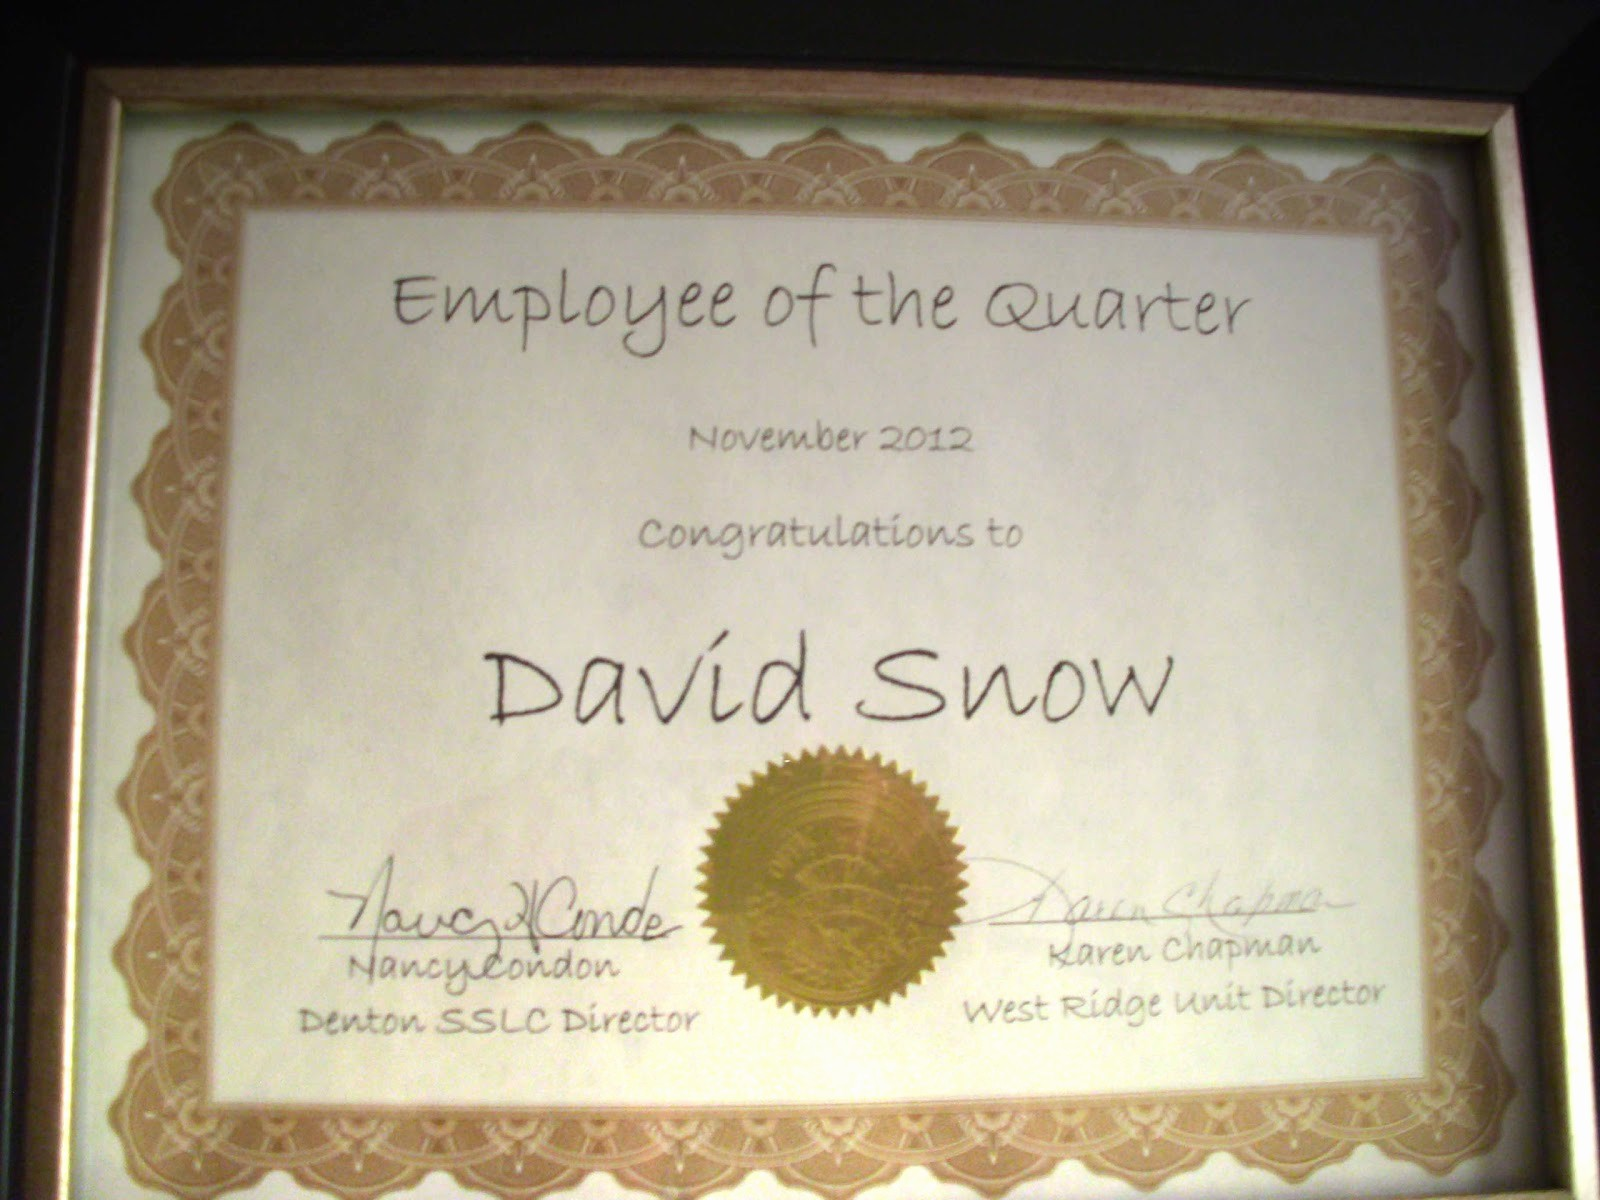 Employee Of the Quarter Certificate Lovely Snow S Journal Employee Of the Quarter